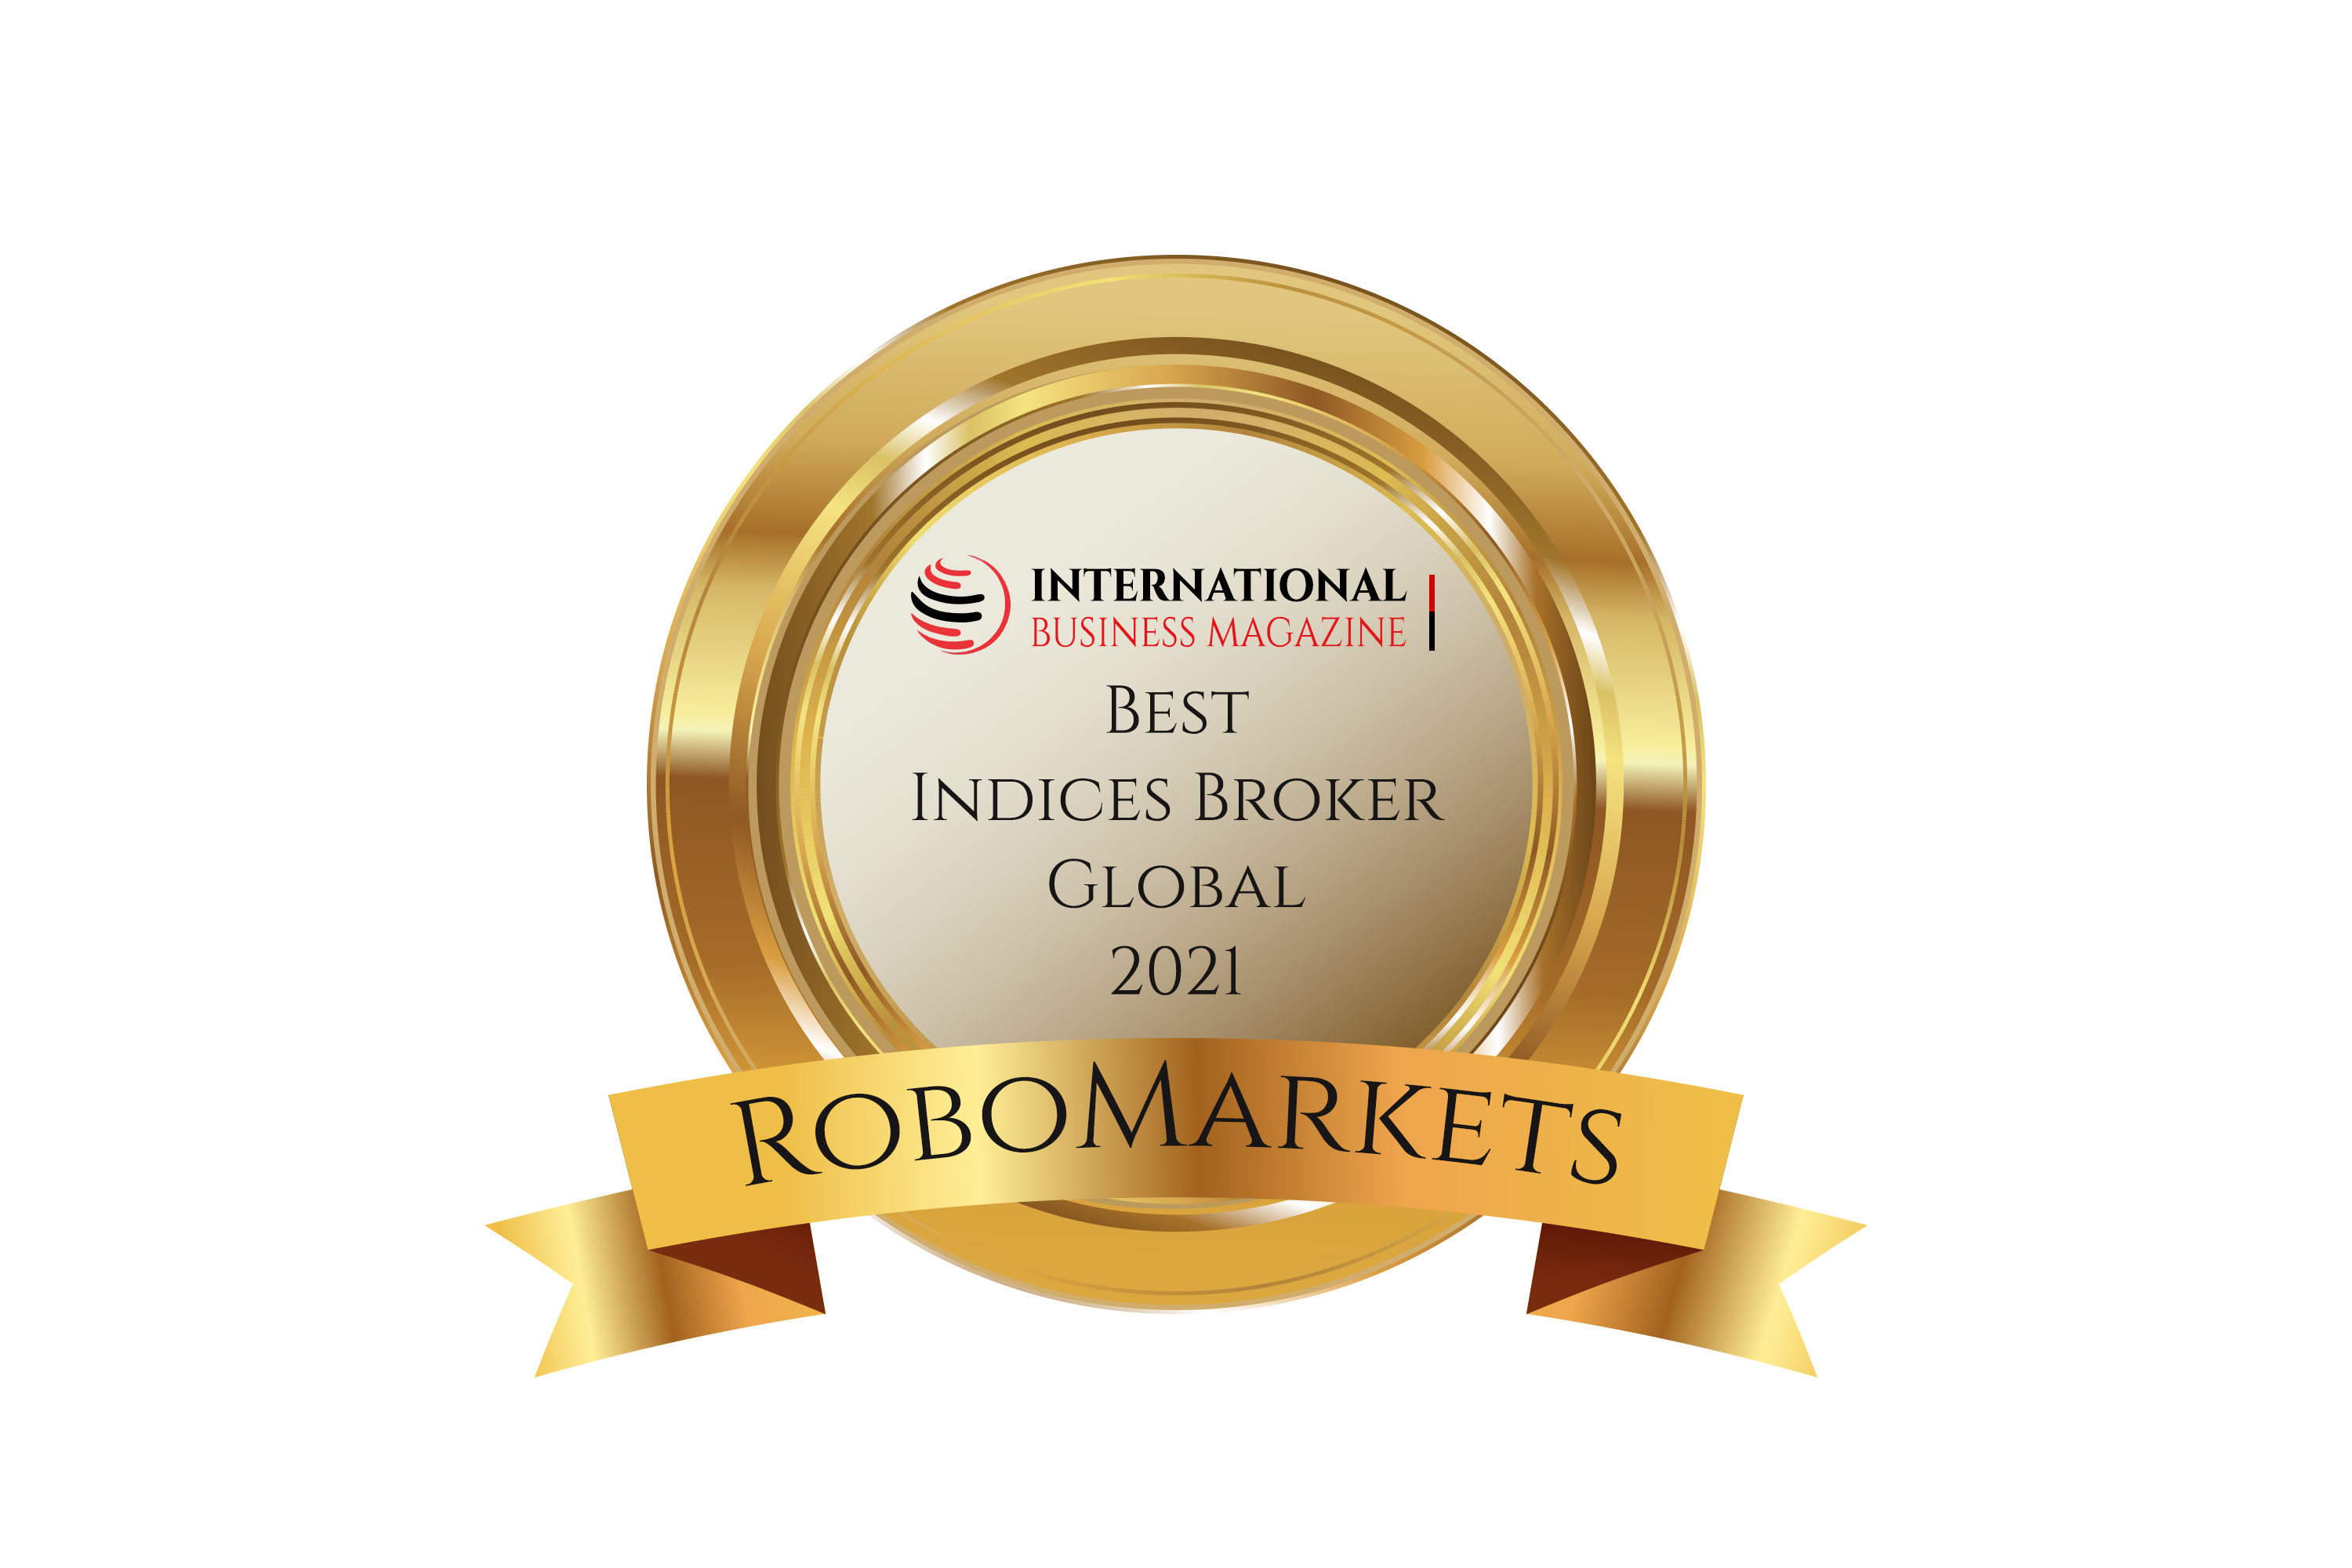 RoboMarkets Recognised as the Best Broker for Investing in Indices in 2021